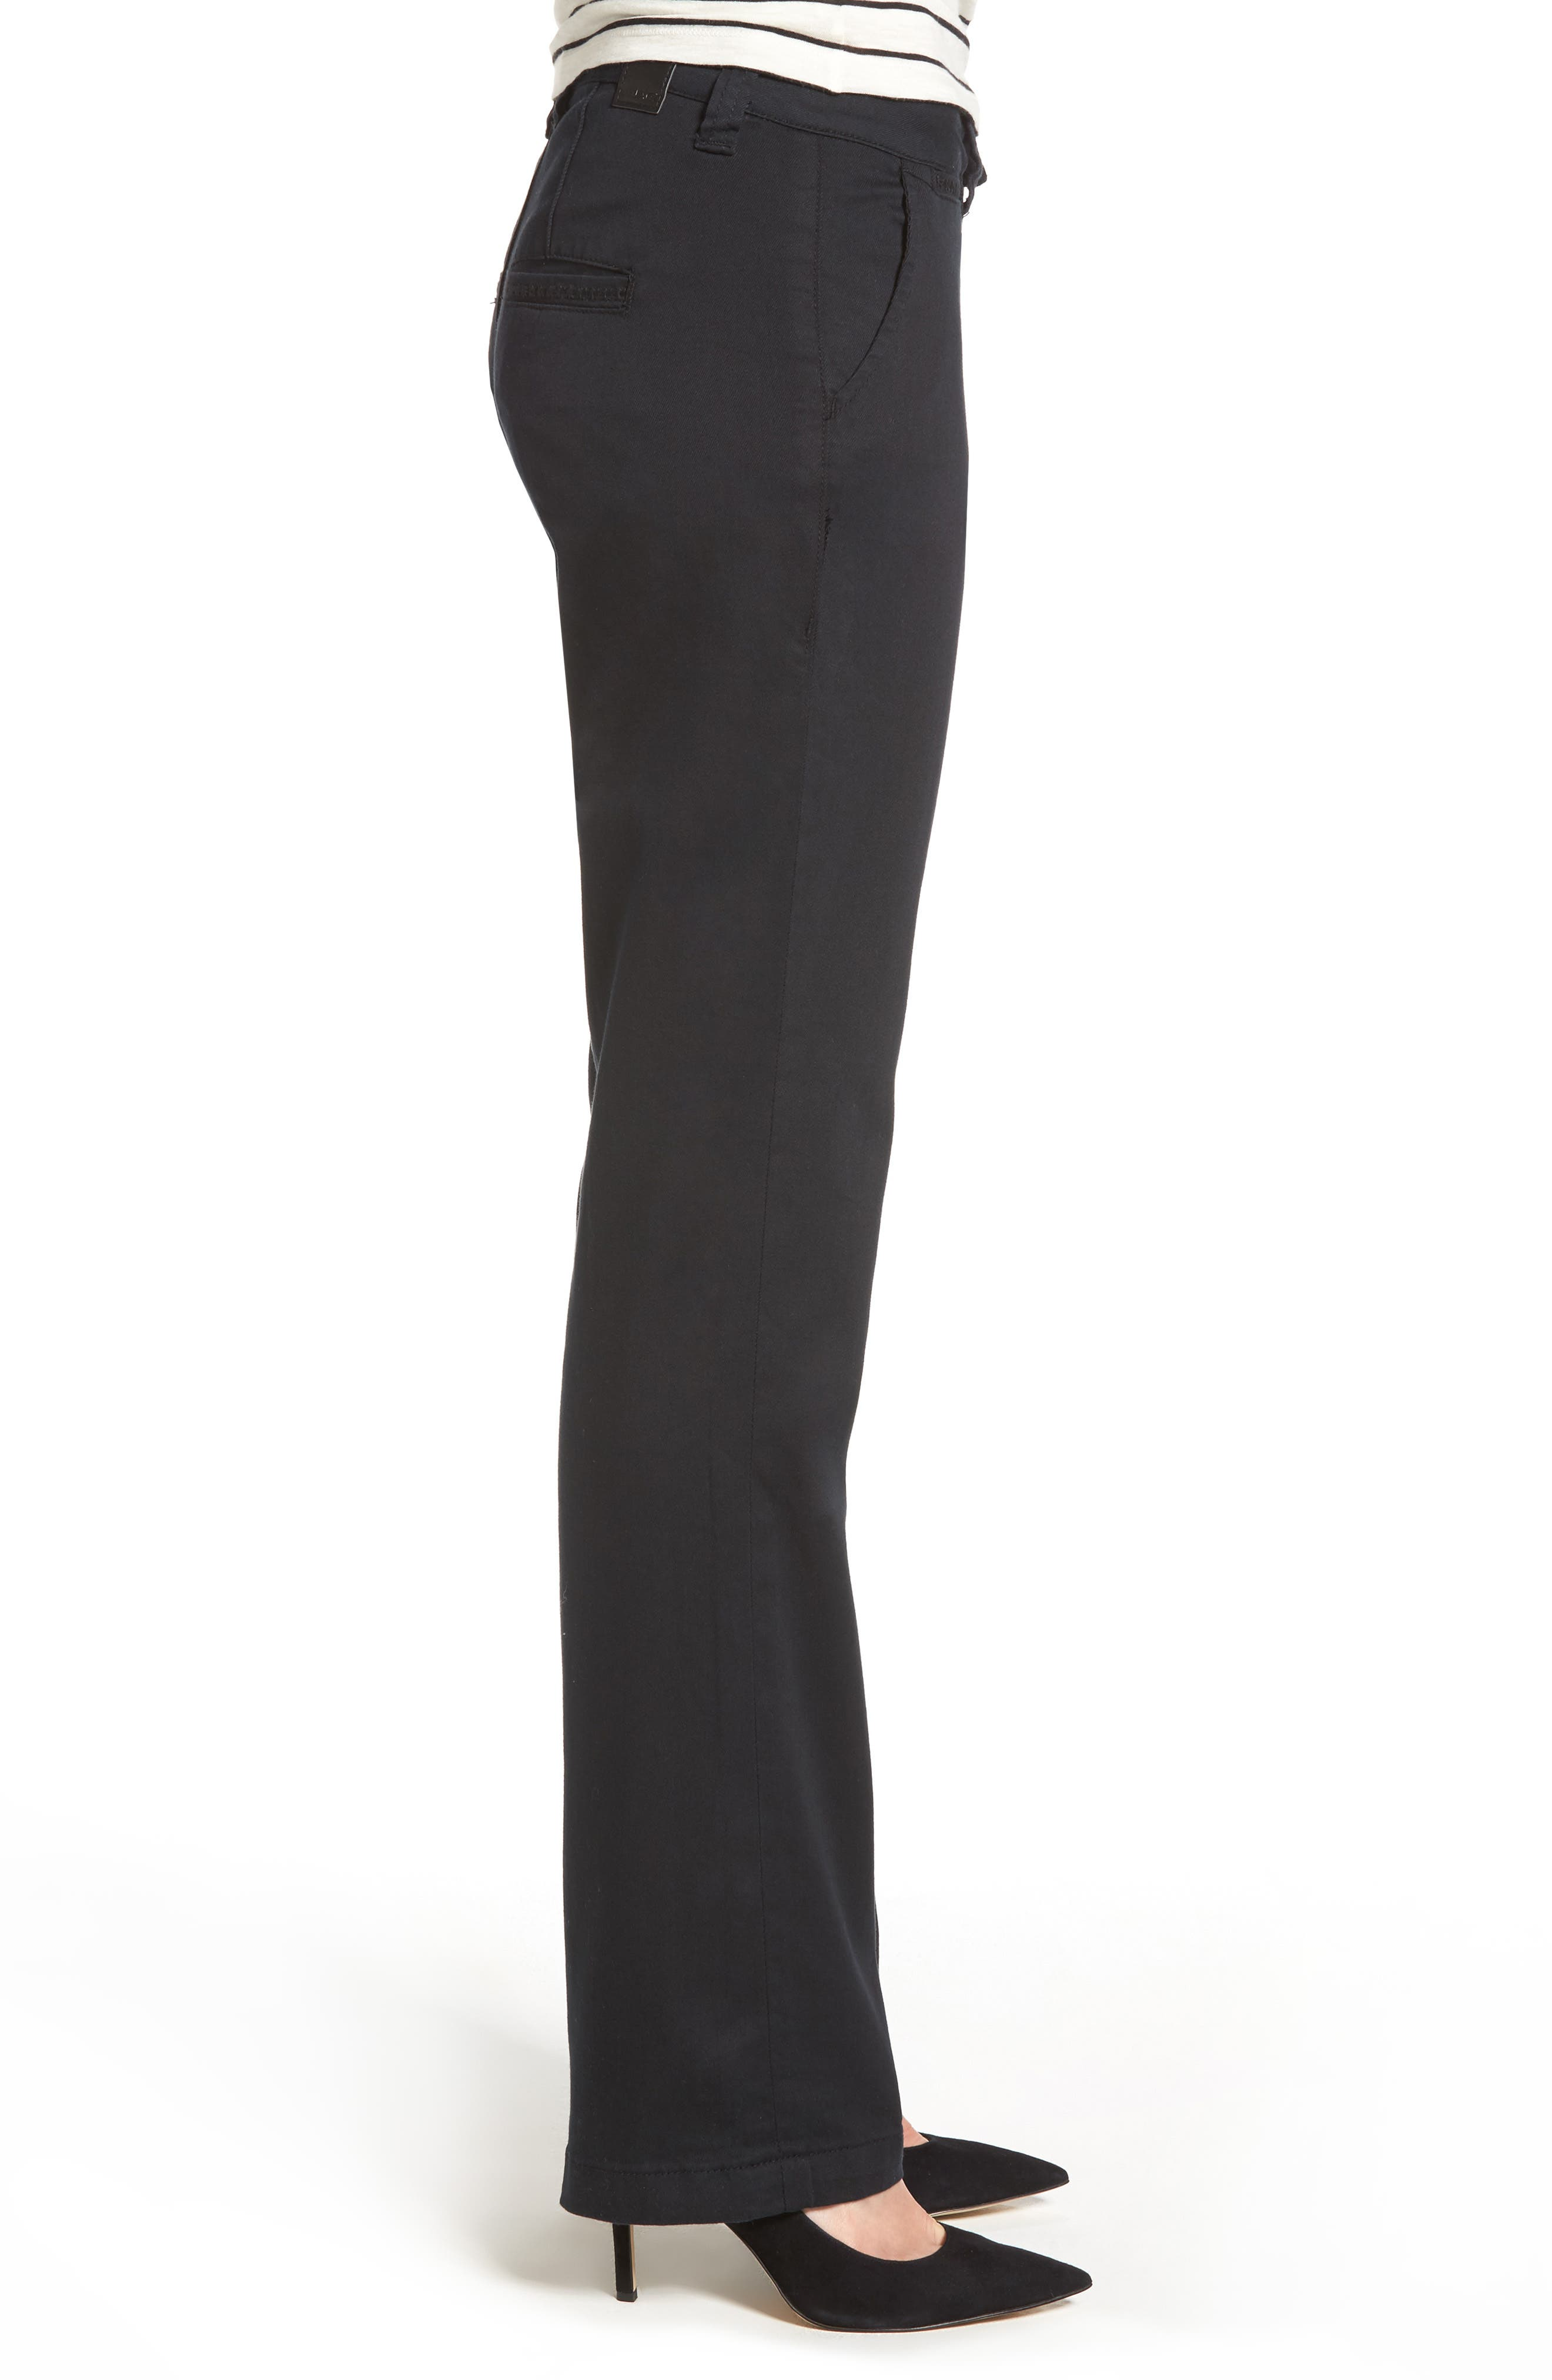 Alternate Image 3  - Jag Jeans Standard Stretch Twill Trousers (Regular & Petite)